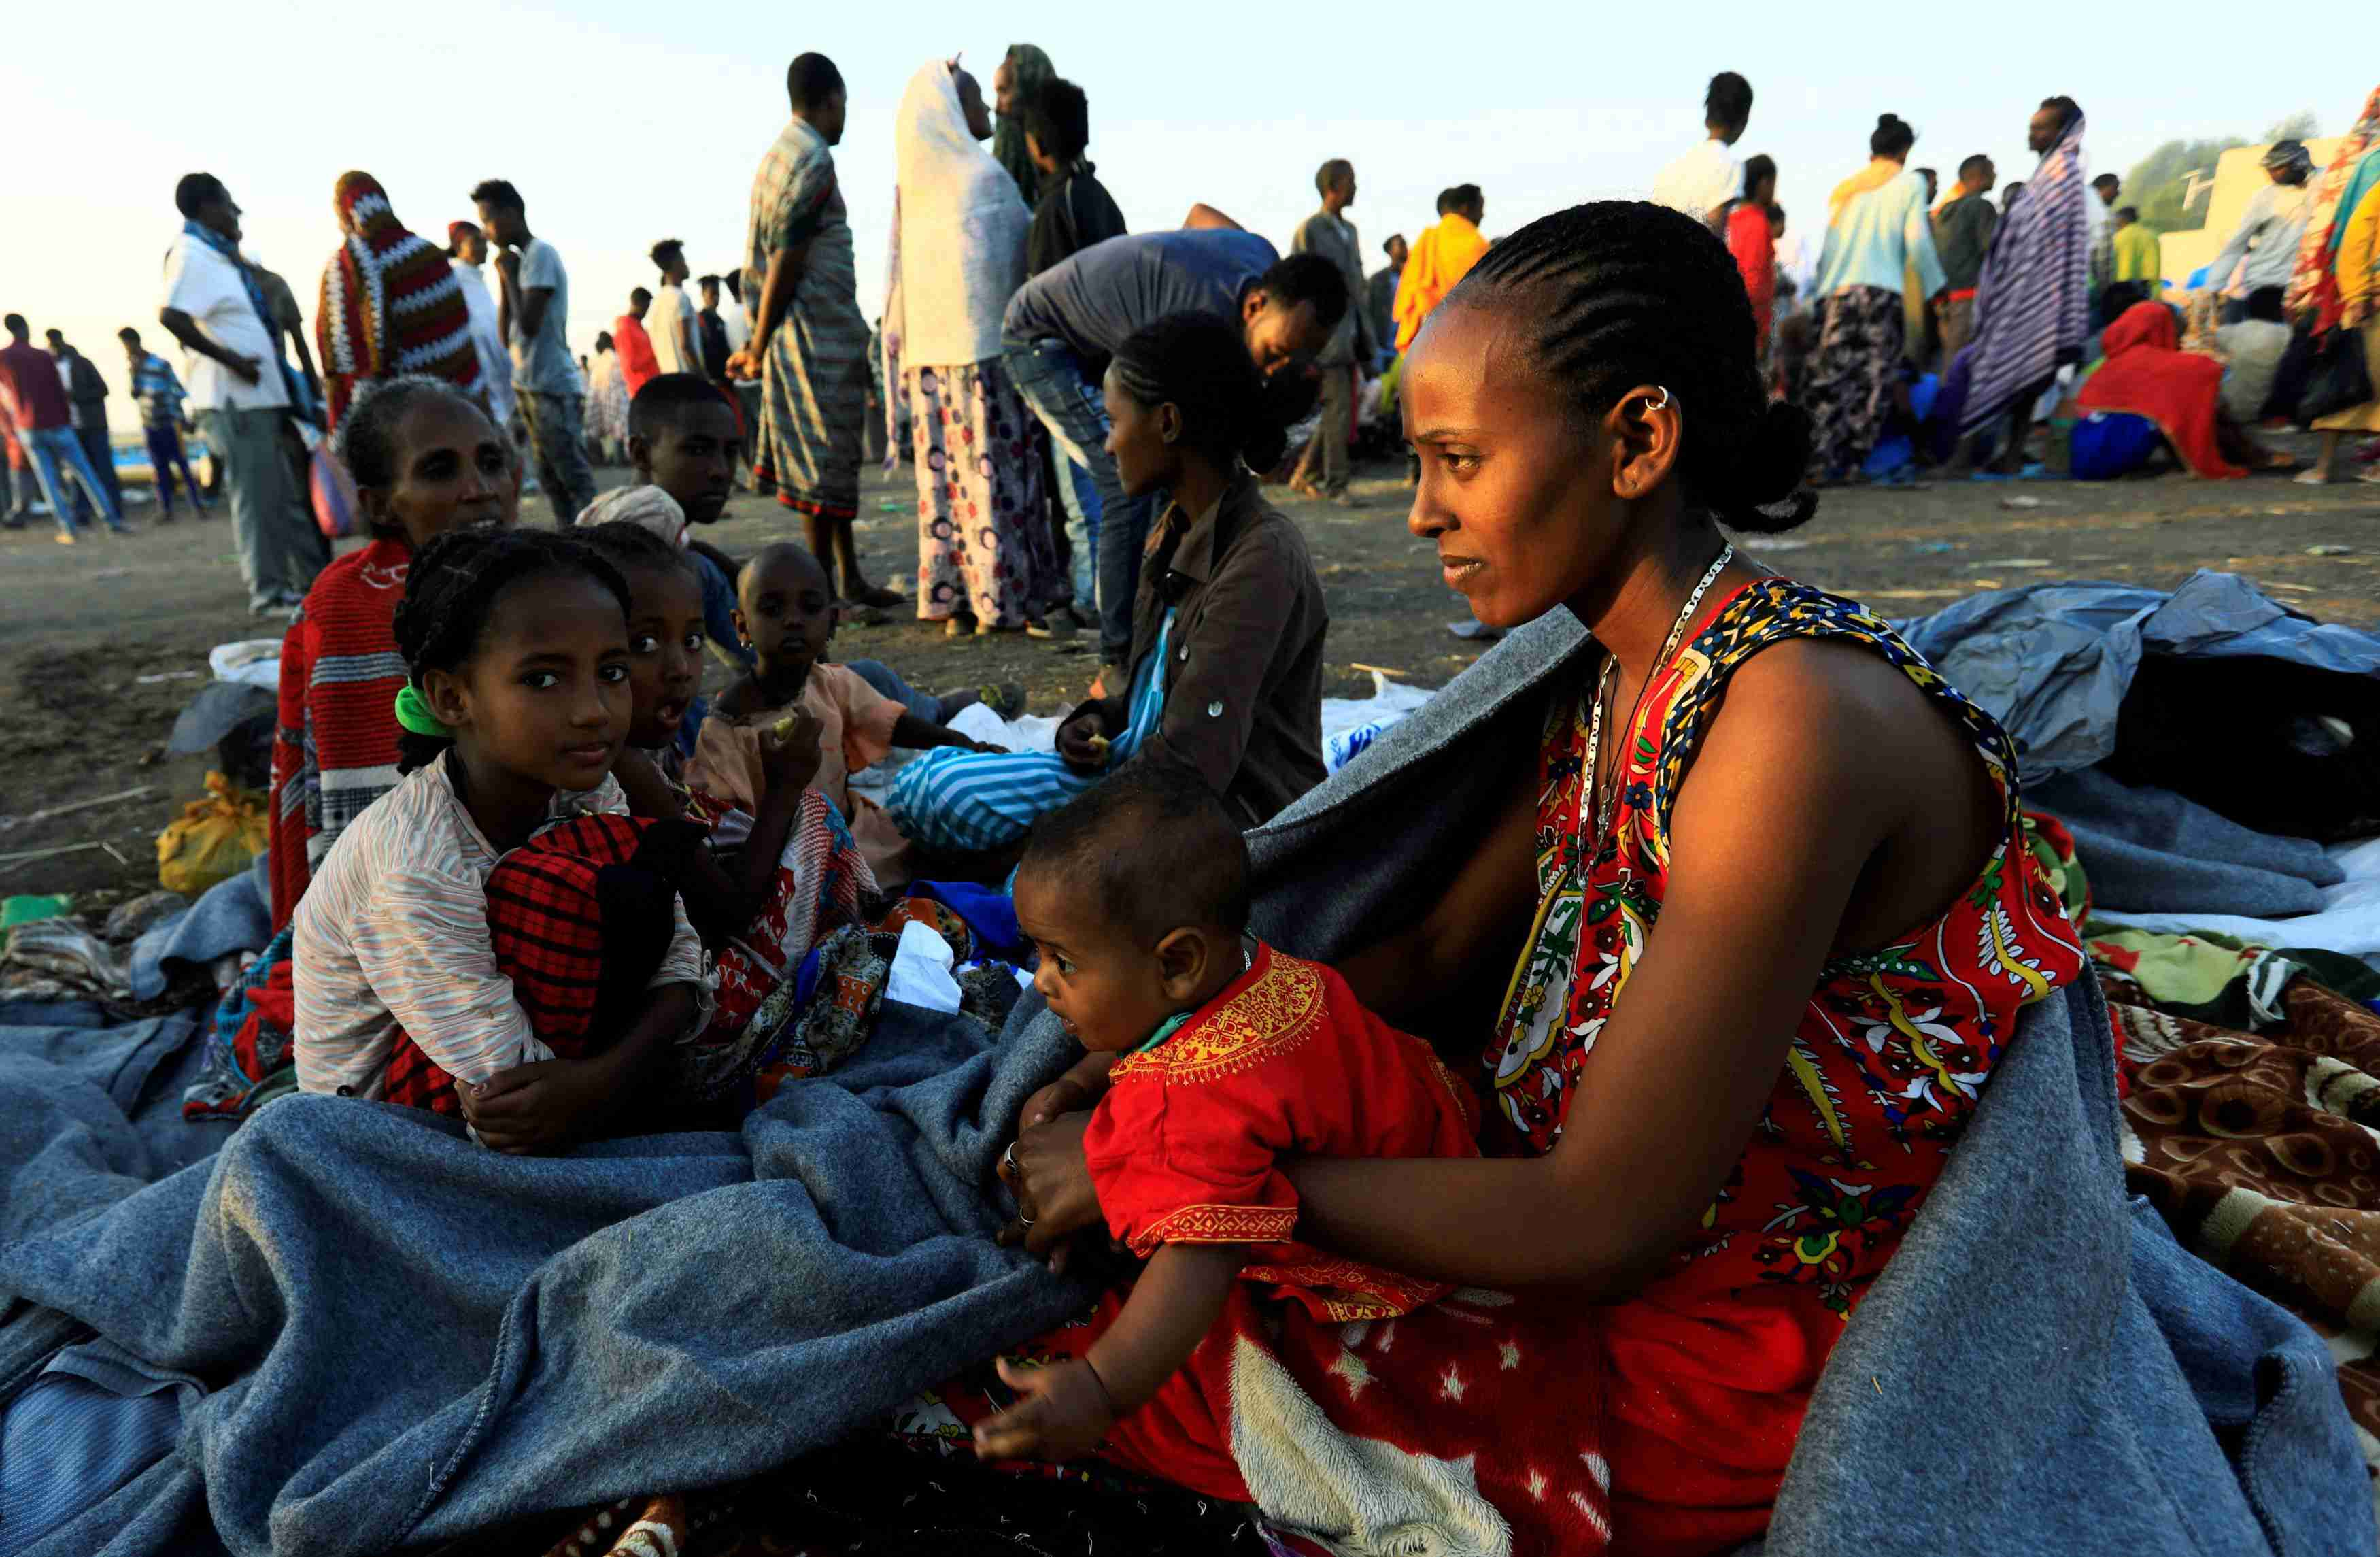 UN team shot at in Tigray after defying checkpoints, Ethiopia says